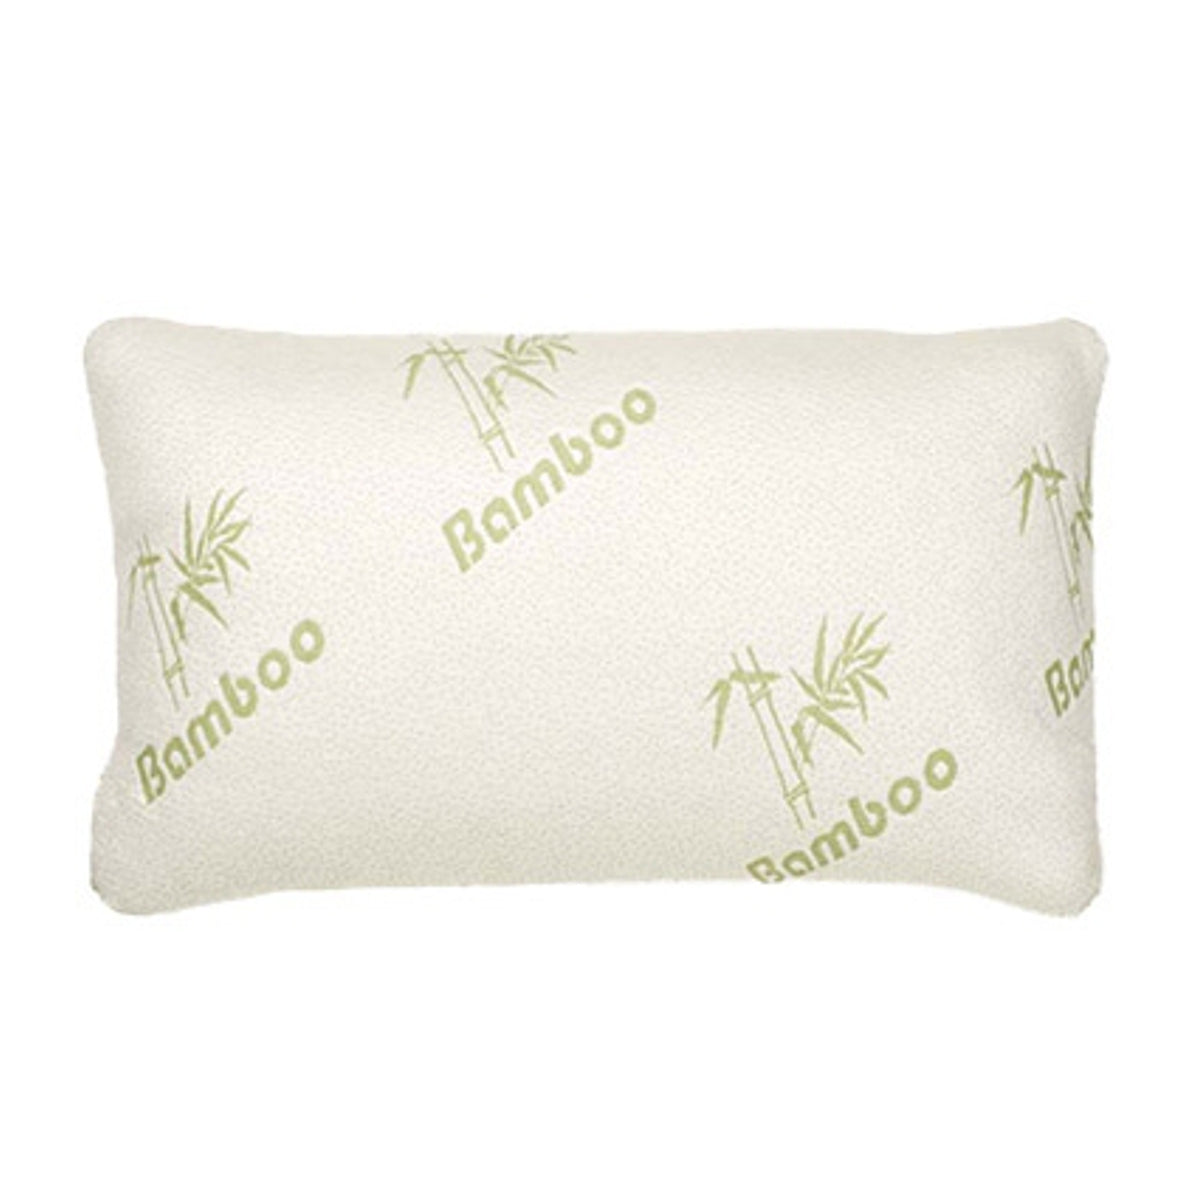 products bamboo pillow memory collections ribbon decor foam blue trends product image